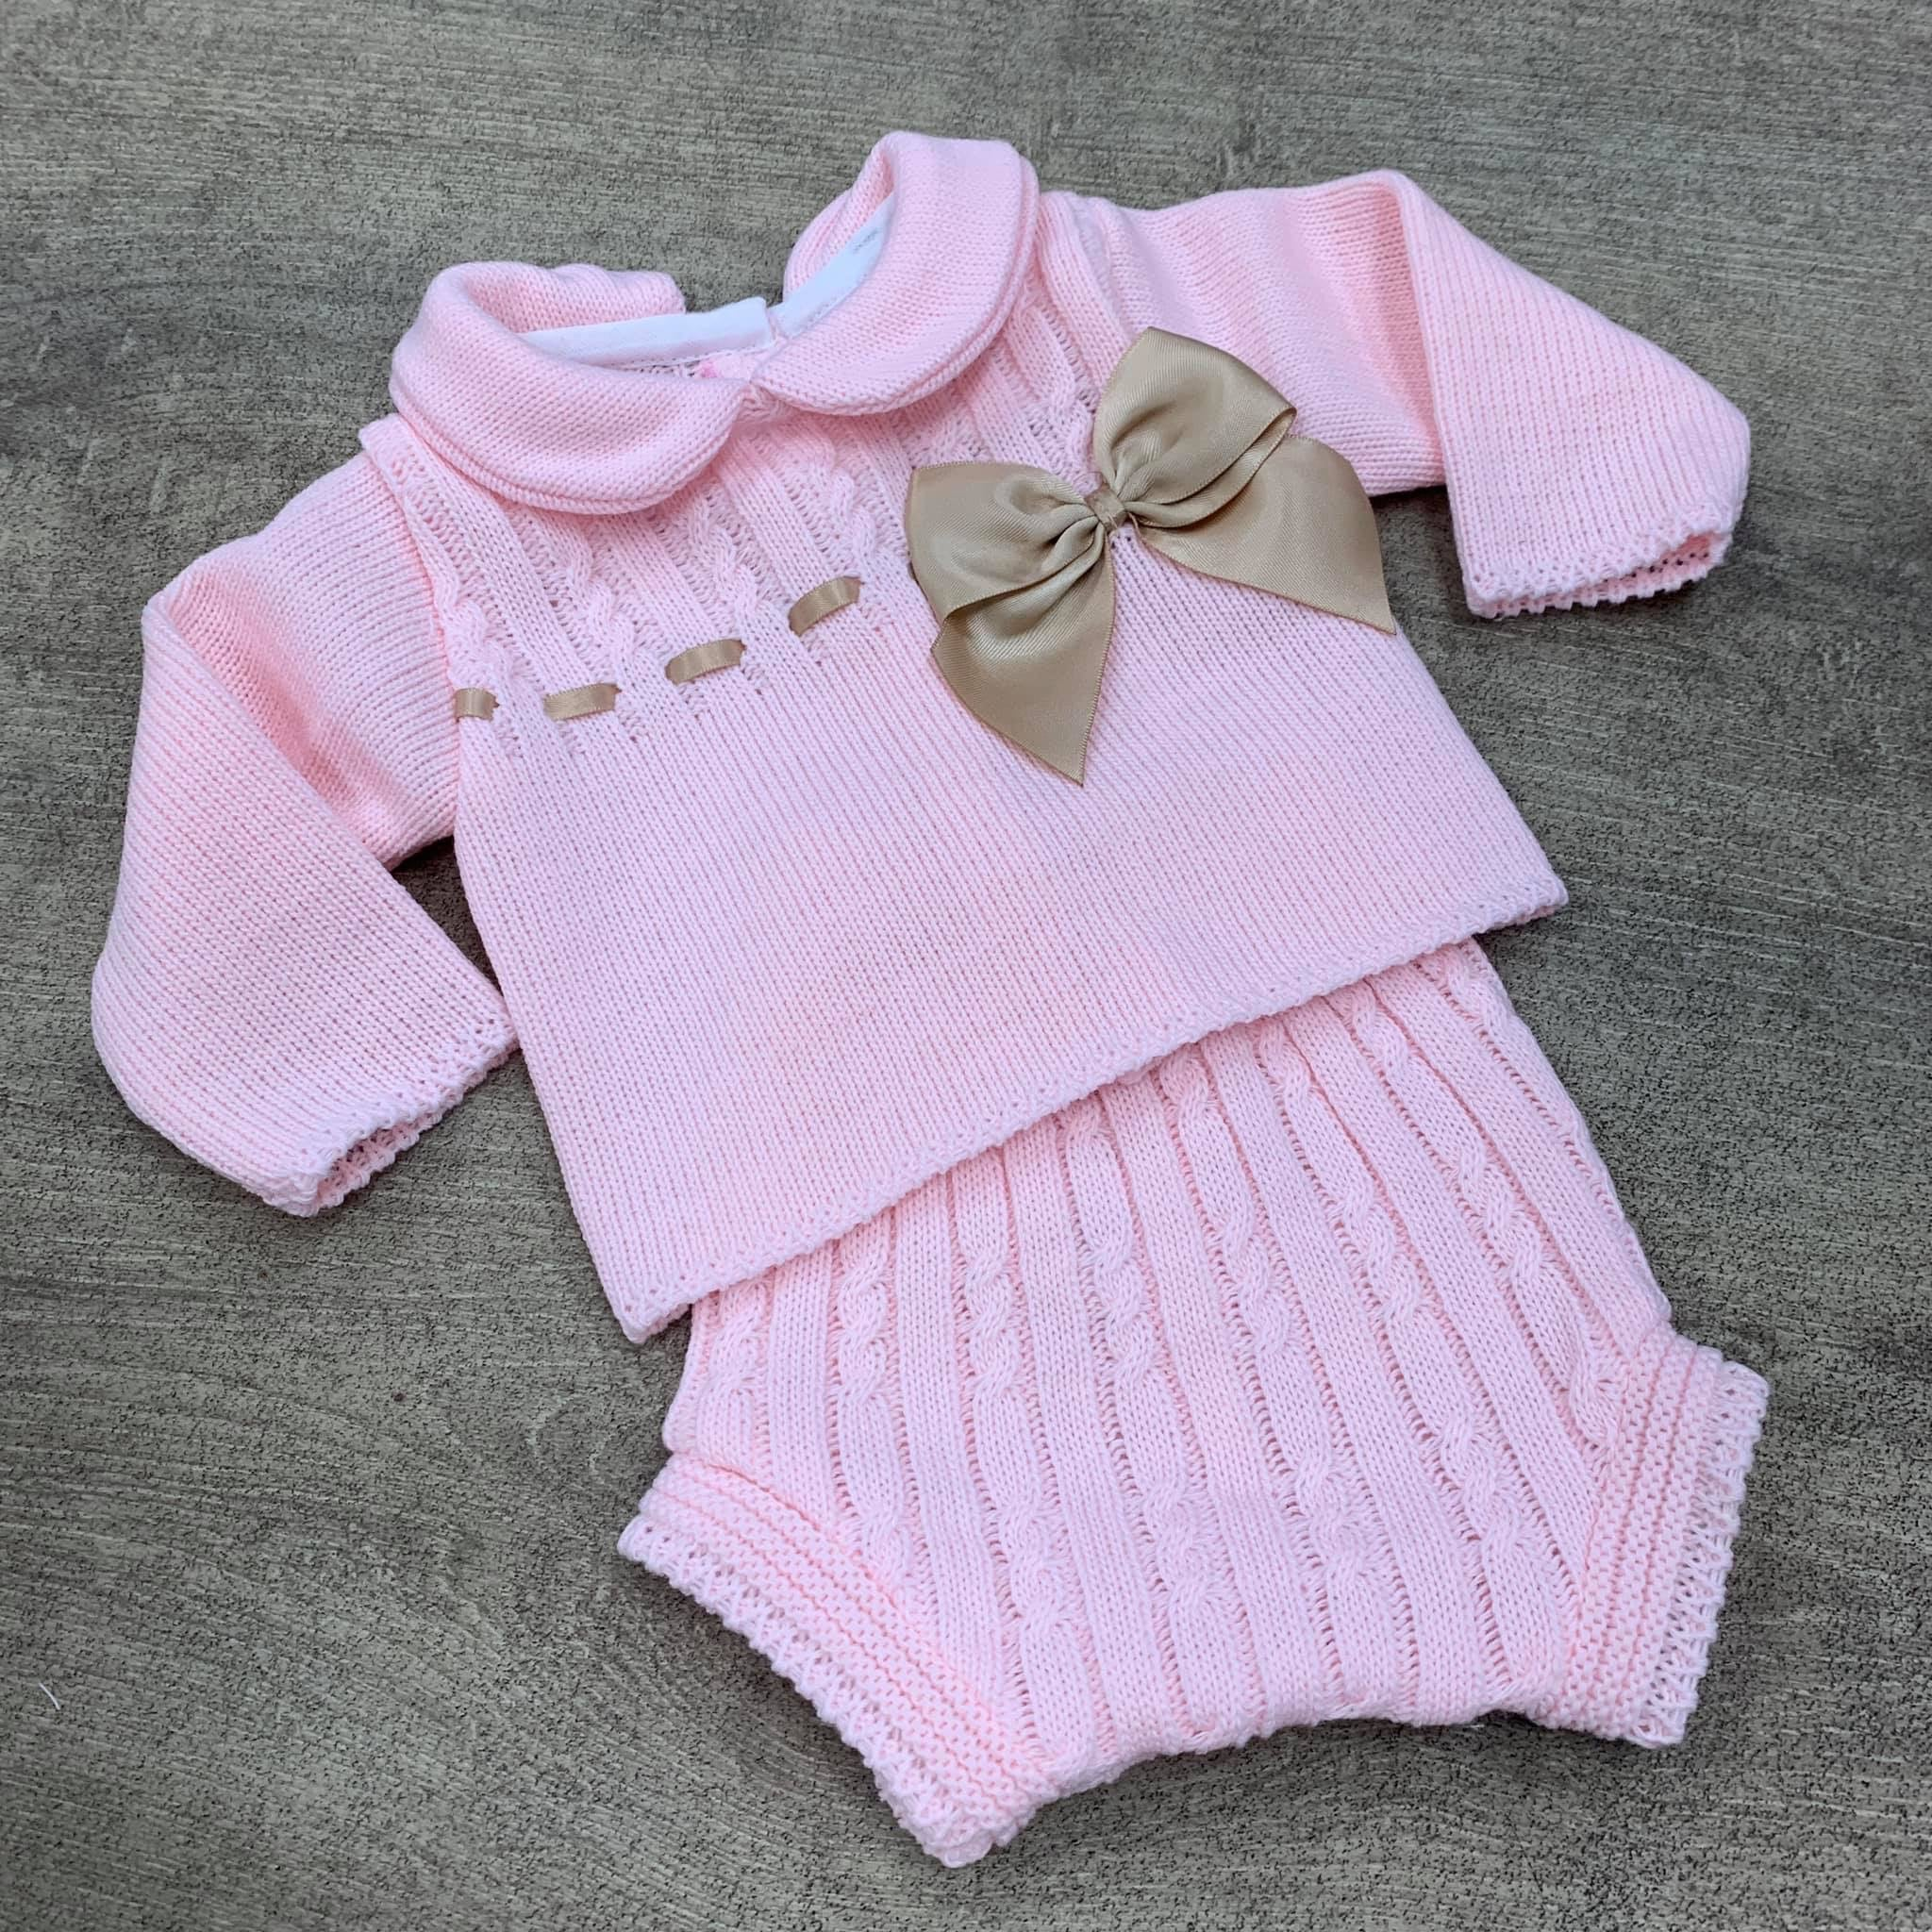 Amelia 2 Piece Knitted Bow Set - Pink